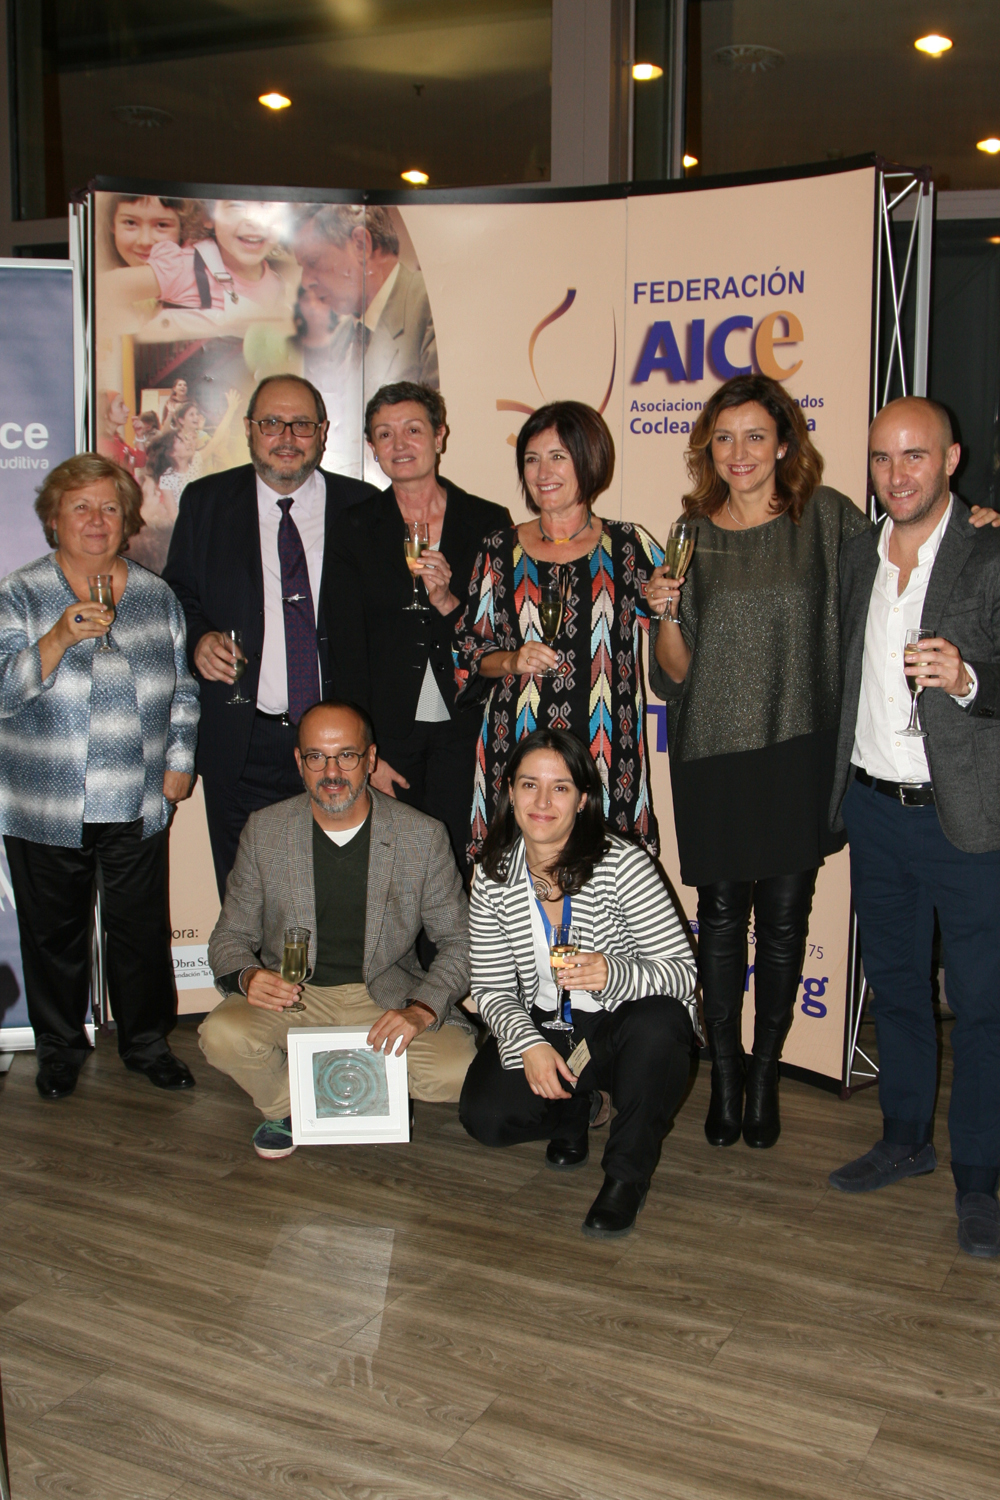 From left to right: Glòria Salvadó, Joan Zamora, Dra. Nuria Miró, Mª del Puerto Gallego, Cristina Espinosa and Carlos Alaiza. Lower row: Carles Campuzano y Lucía Aznar